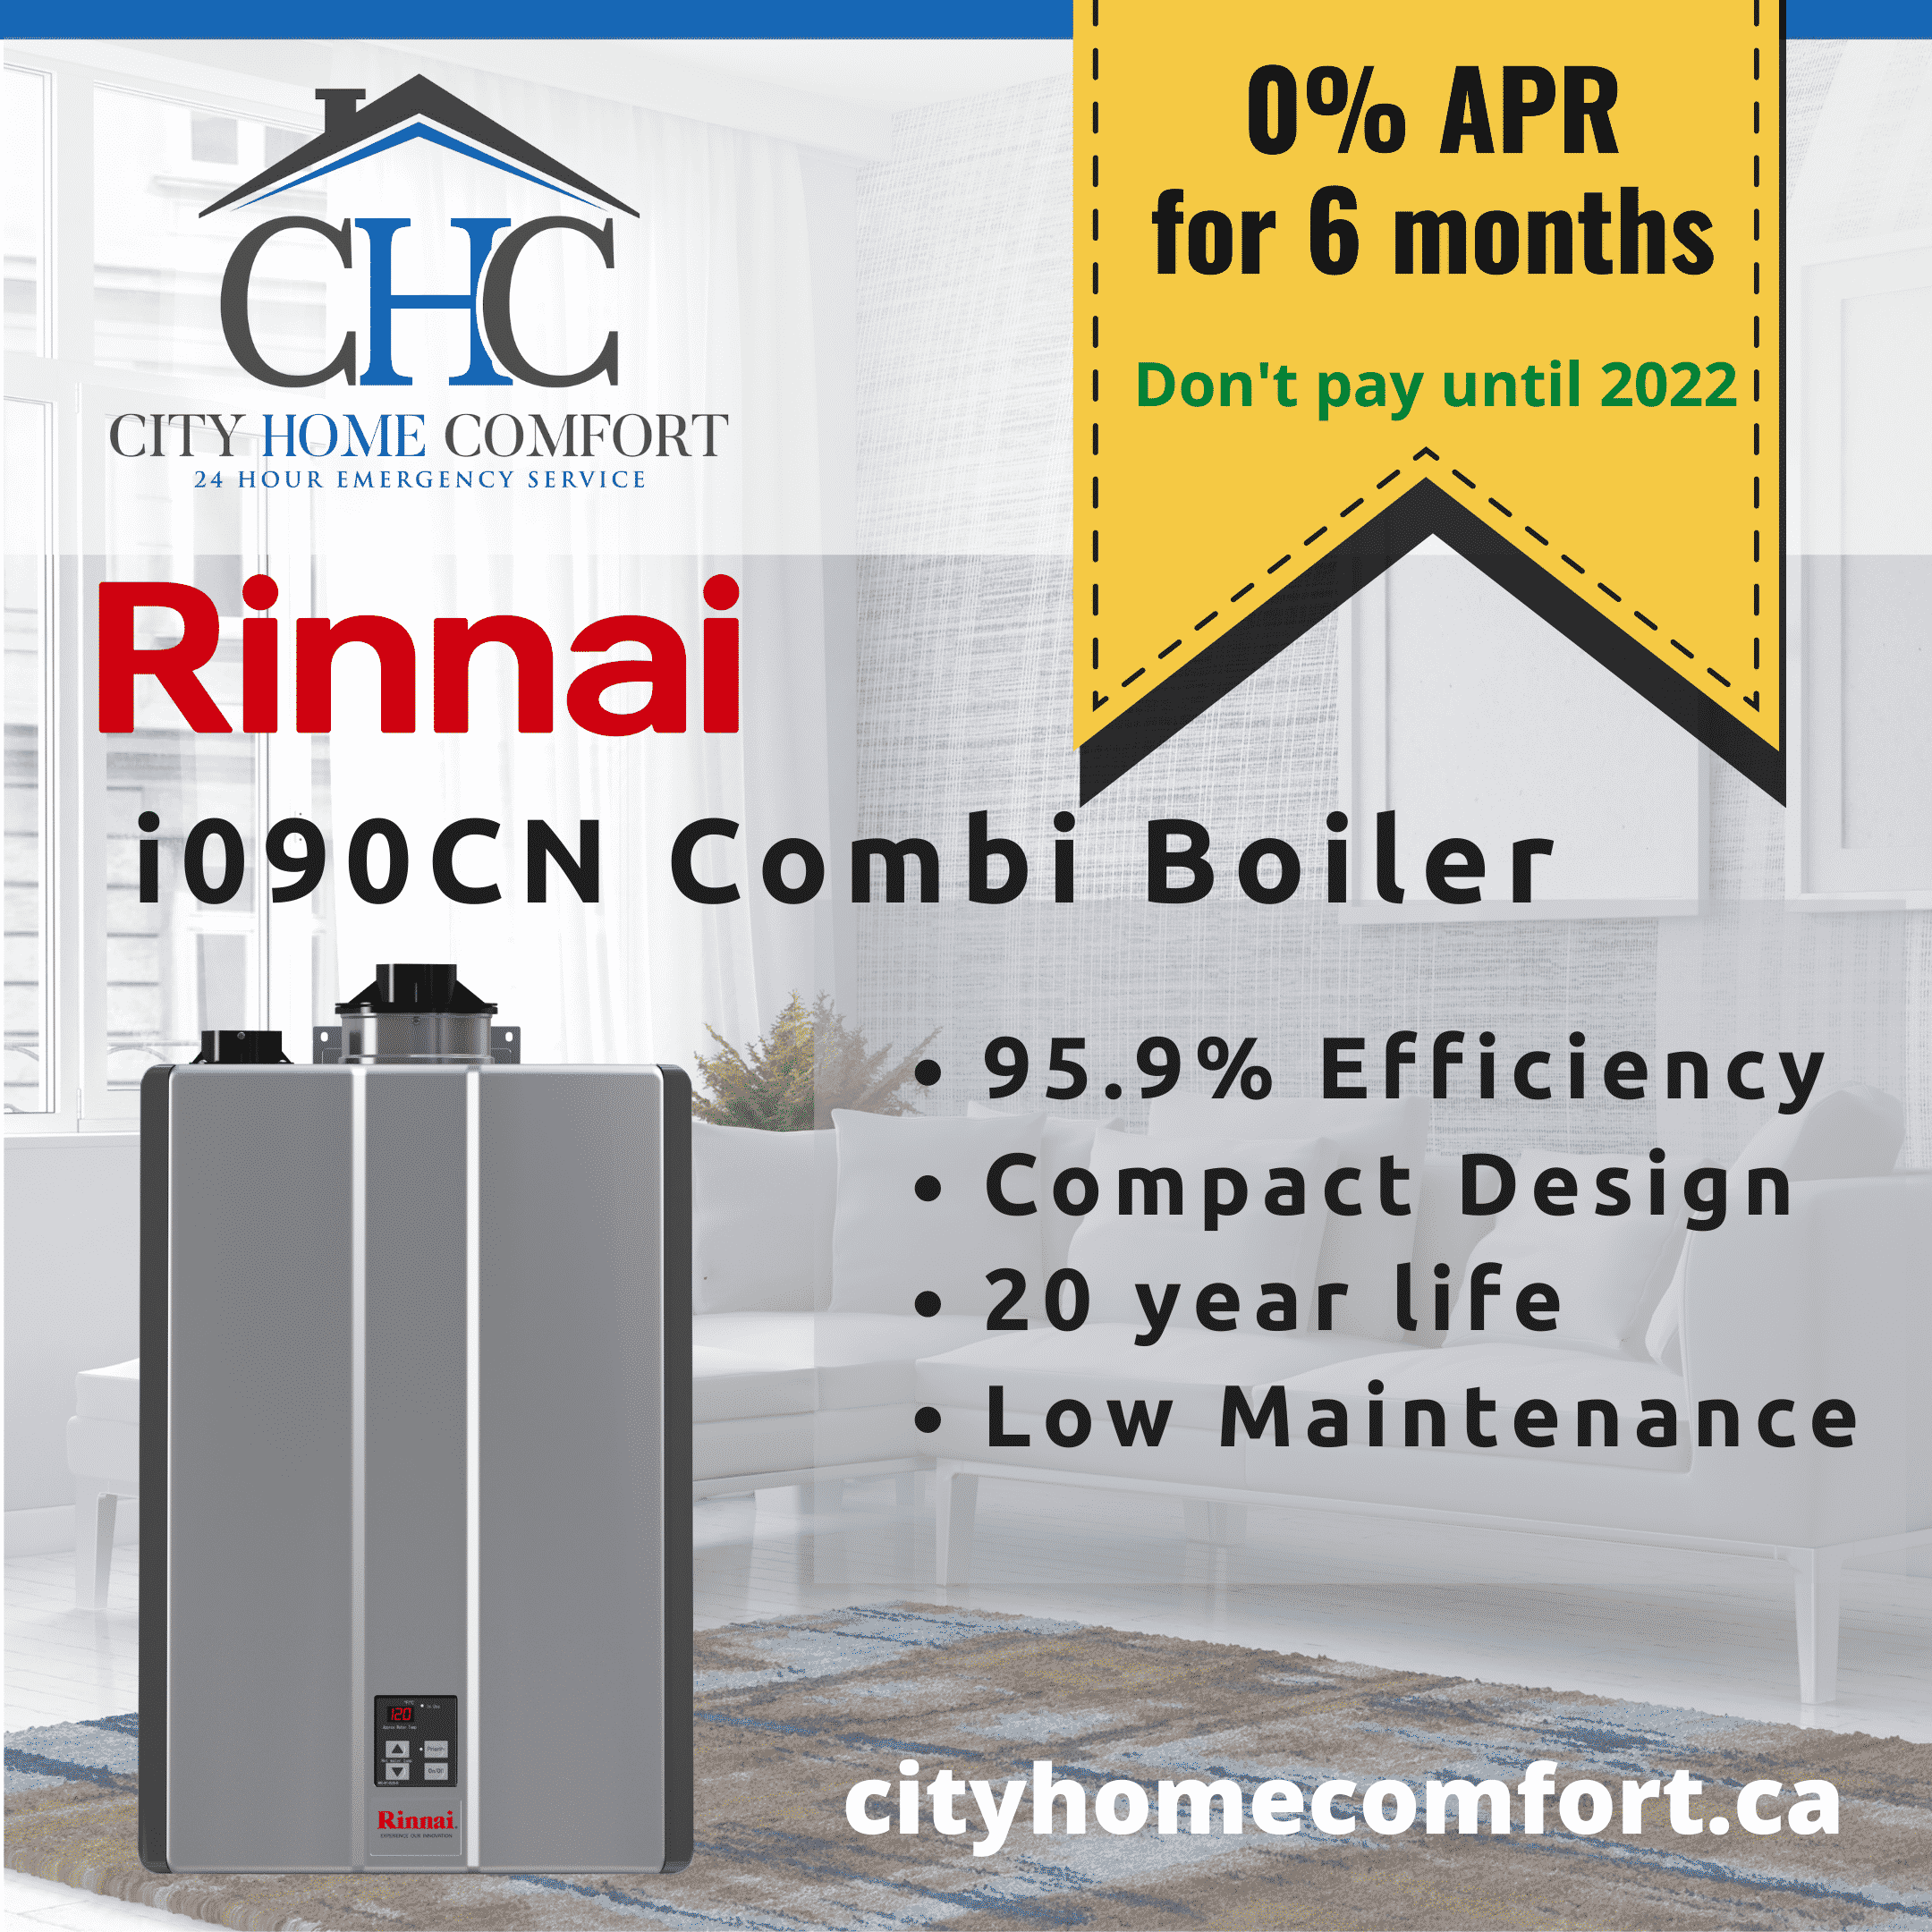 6 months at 0% for Rinnai